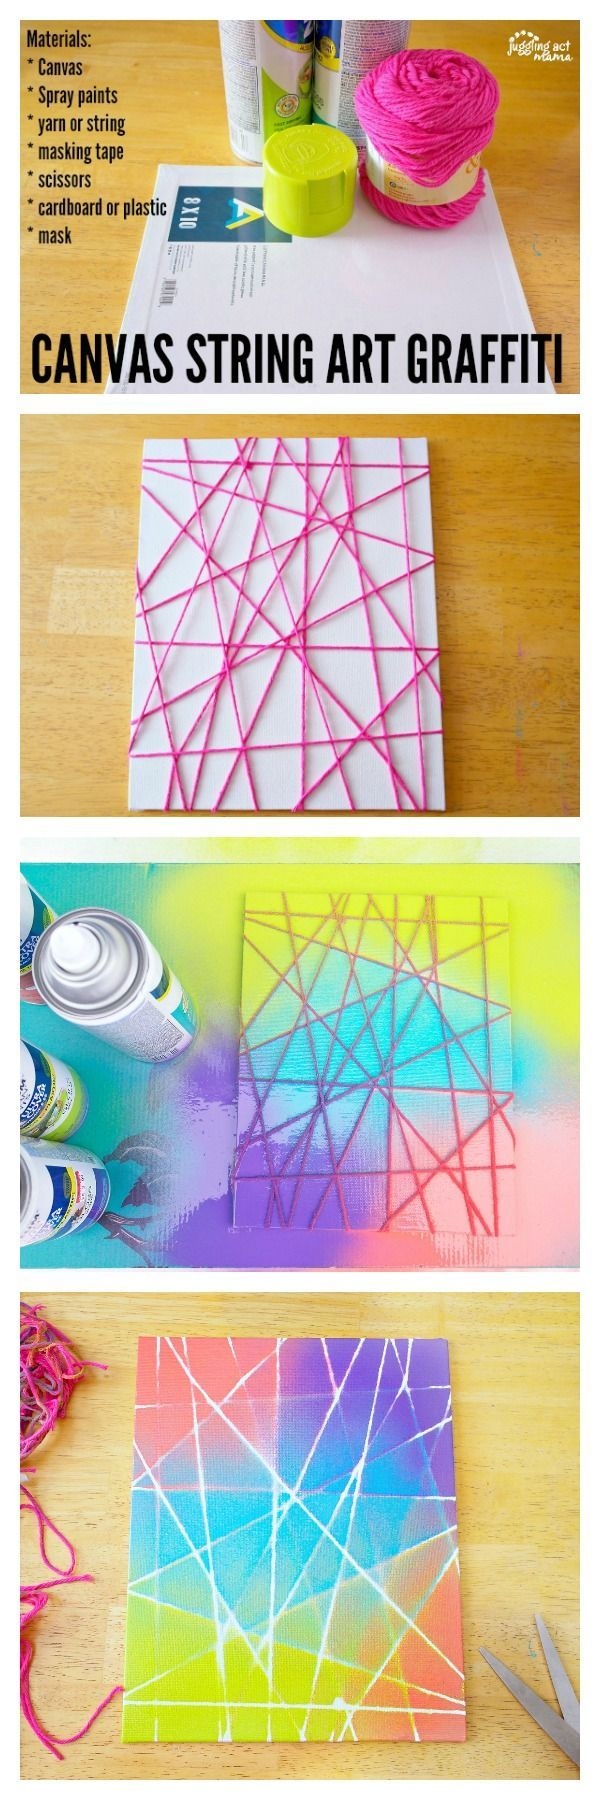 Canvas String Art Graffiti